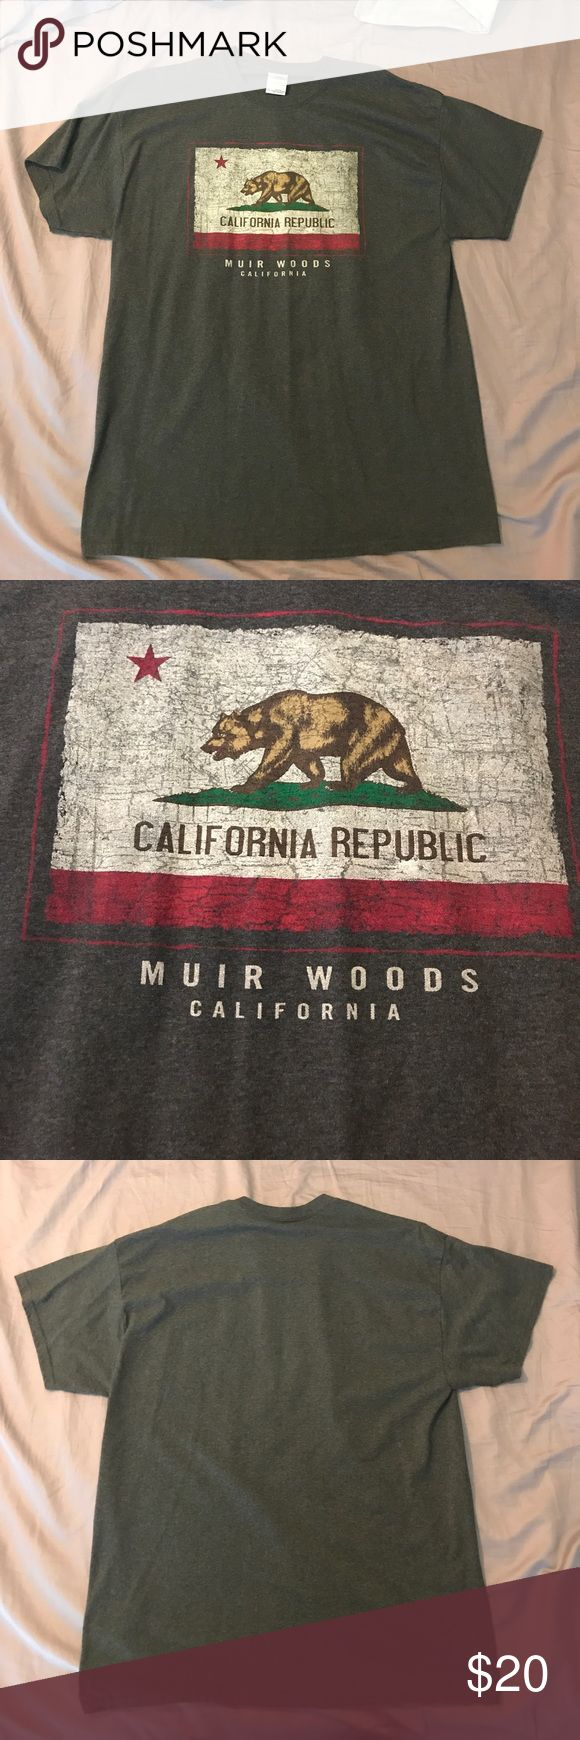 Men's California Republic Flag T-Shirt XL Washed and never worn. California Flag graphic, distressed, Muir Woods, dark charcoal grey heather t-shirt. Gildan Shirts Tees - Short Sleeve